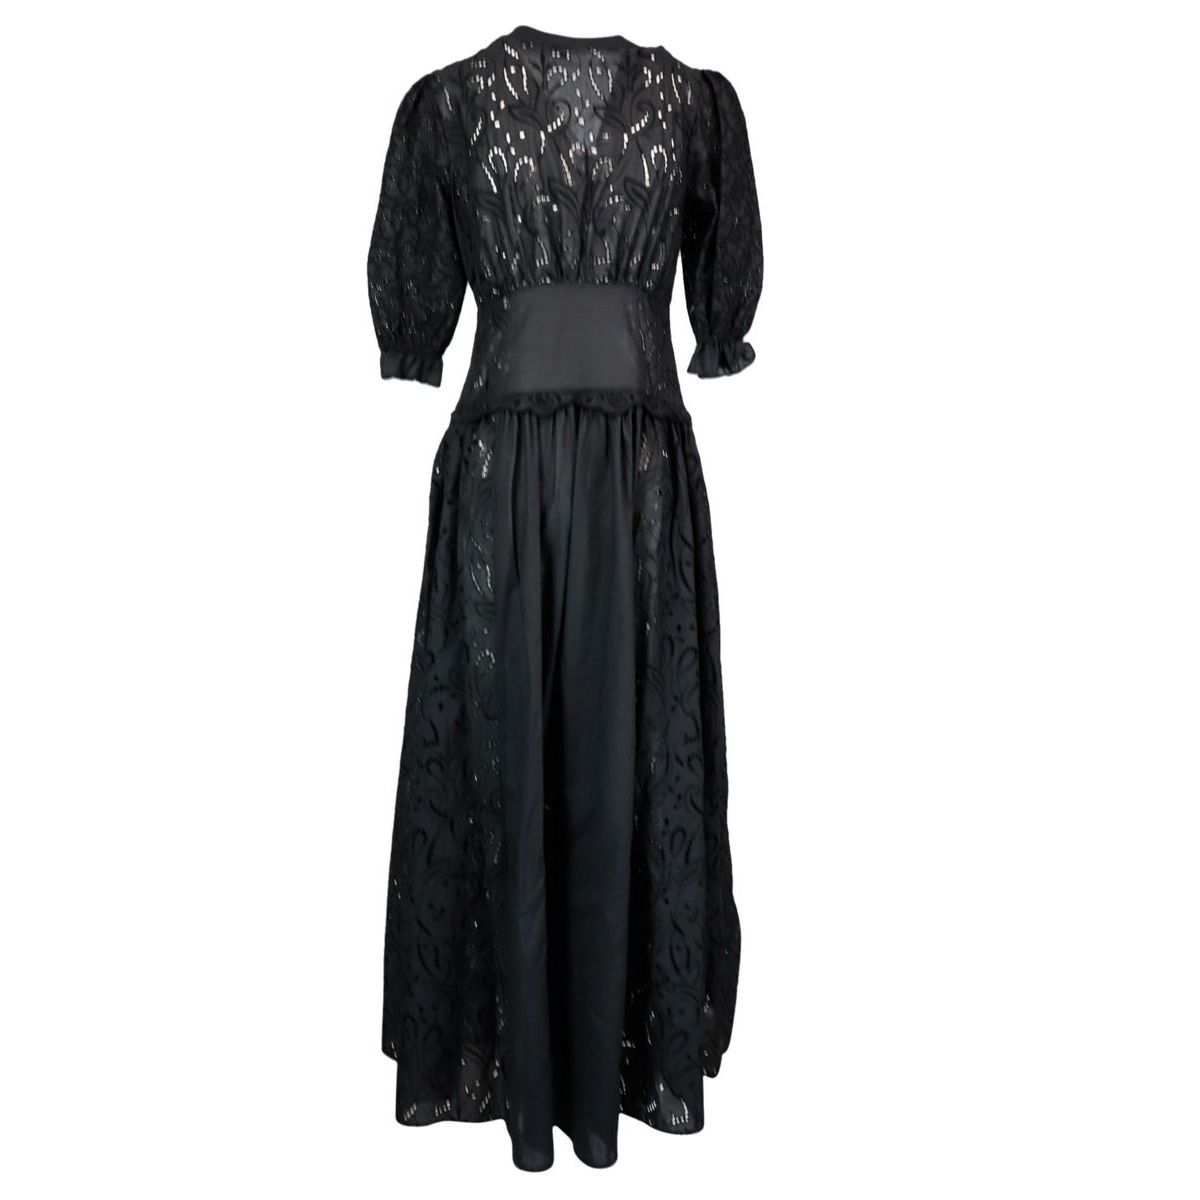 V-neck sangallo lace shirt dress, Black ERMANNO SCERVINO